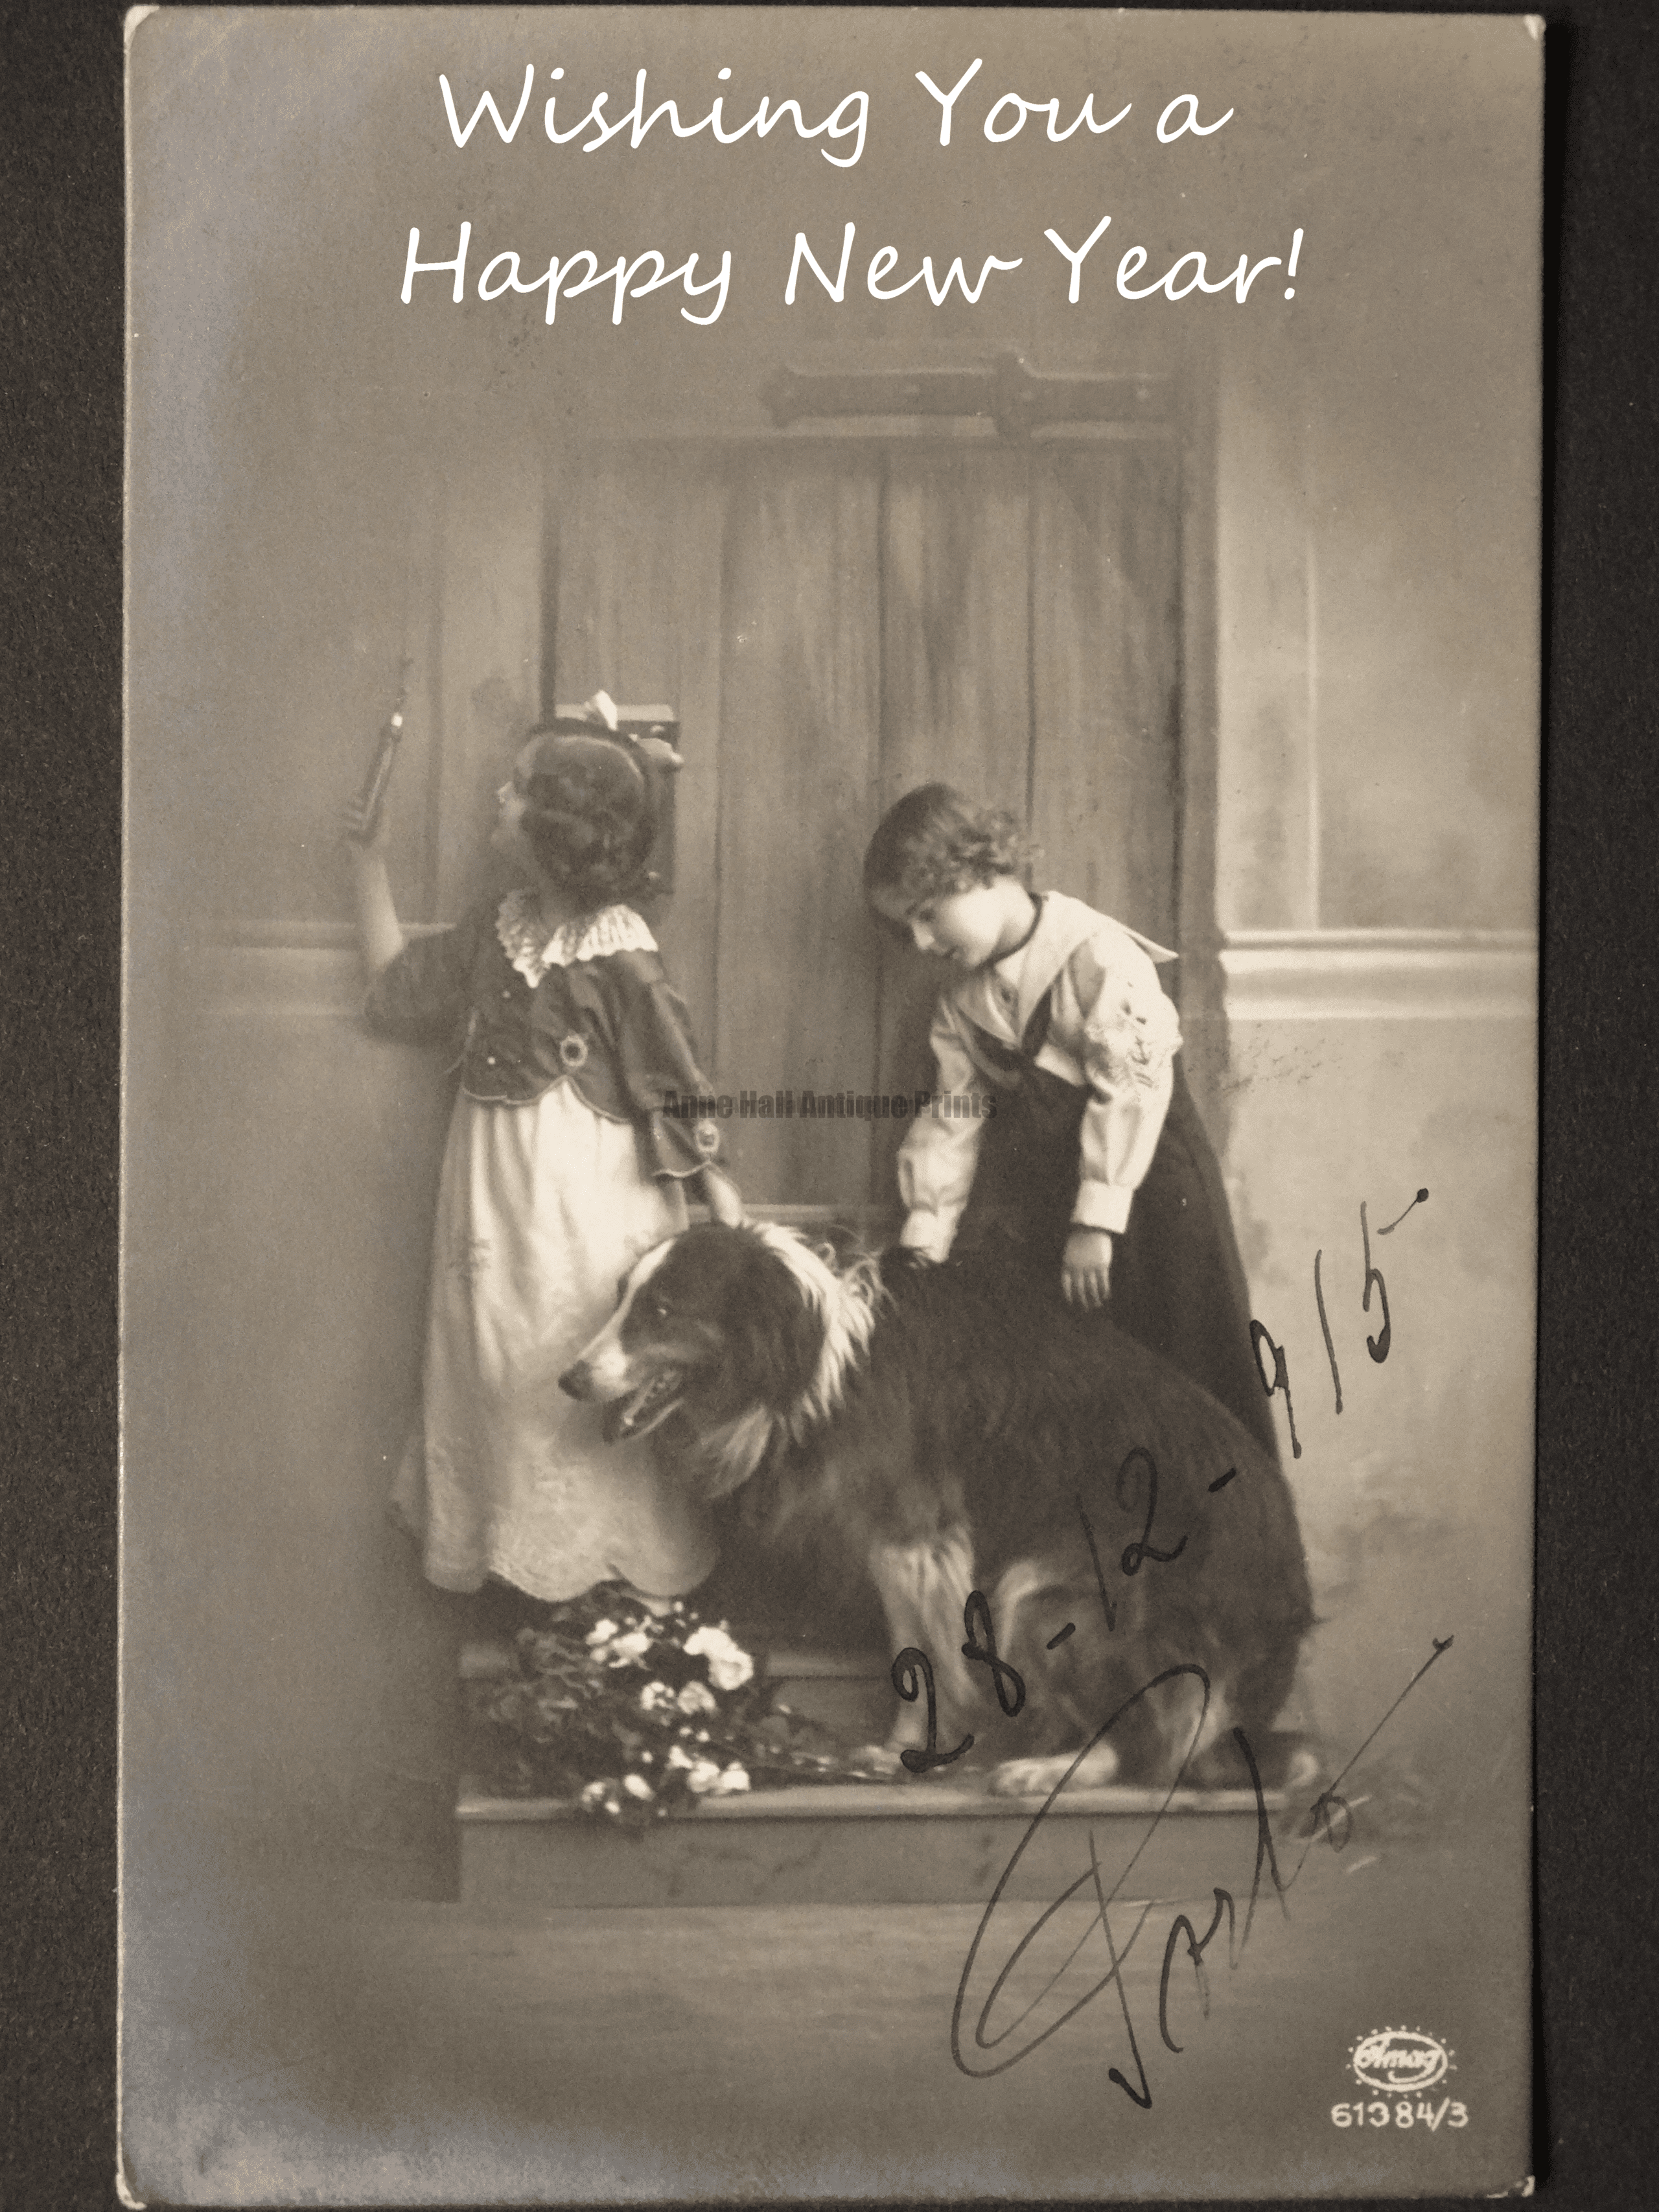 Wishing you a Happy New Year from Anne Hall Antique Prints!